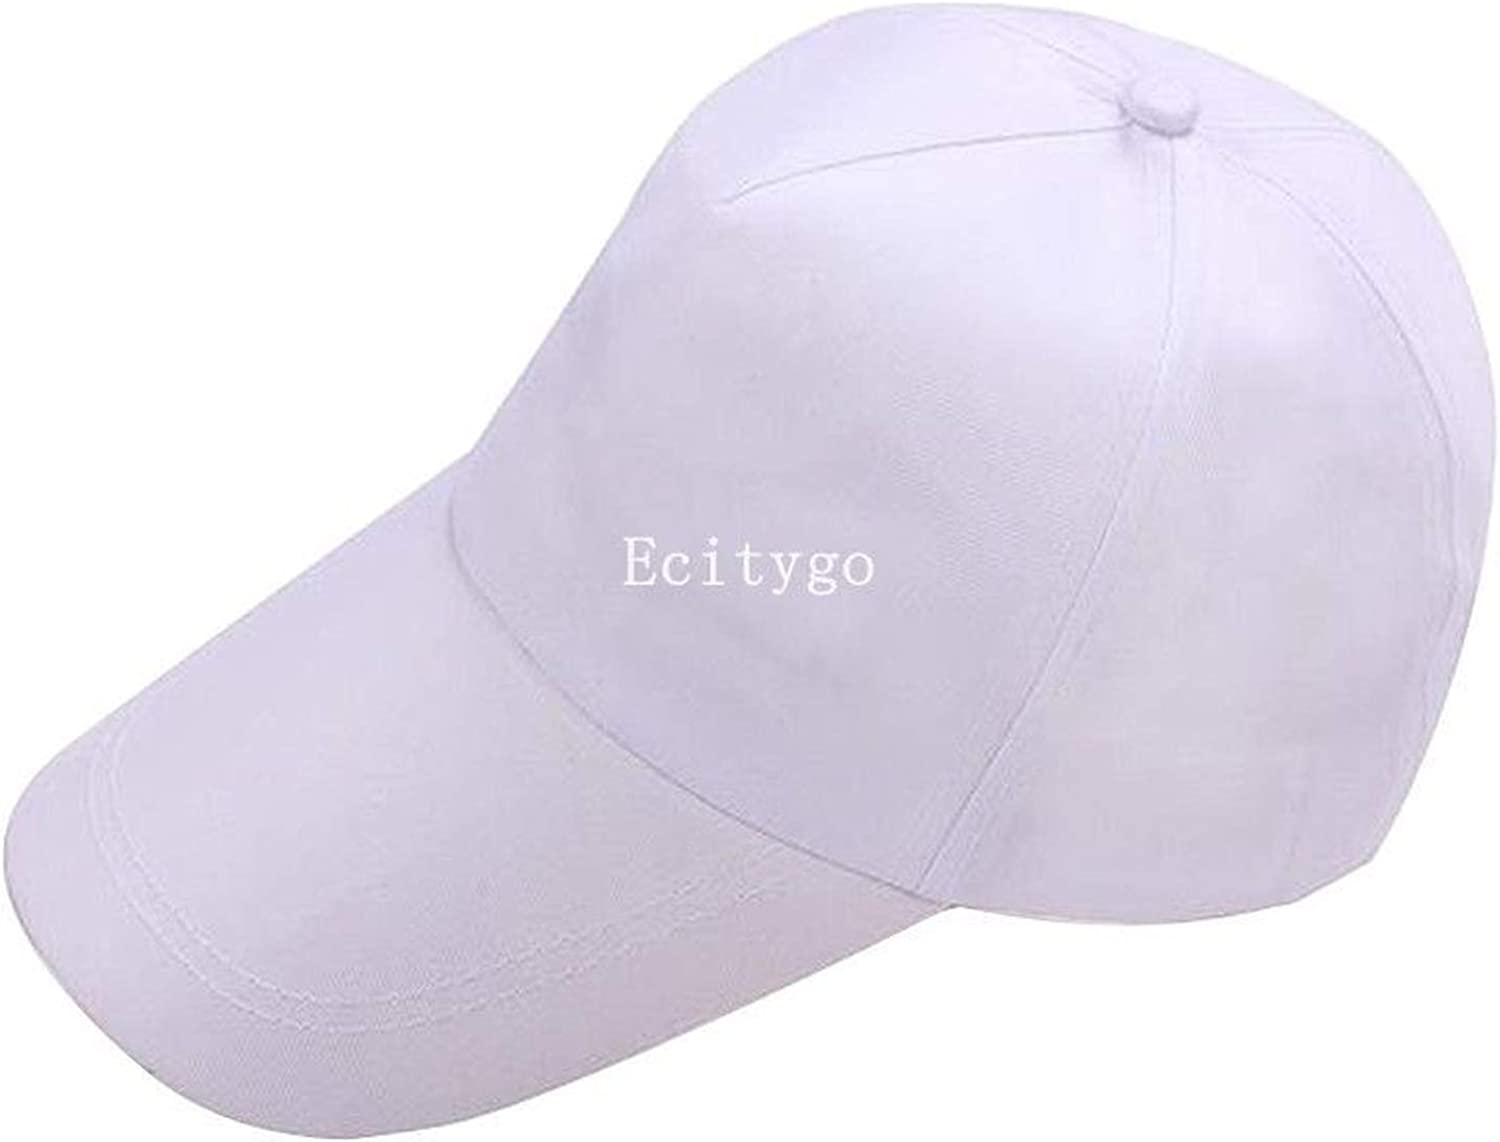 Summer Mens Baseball Cap Dad Hats Unisex Plain Fitted Womens Trucker Hats Solid Color Hip Hop Flat Caps